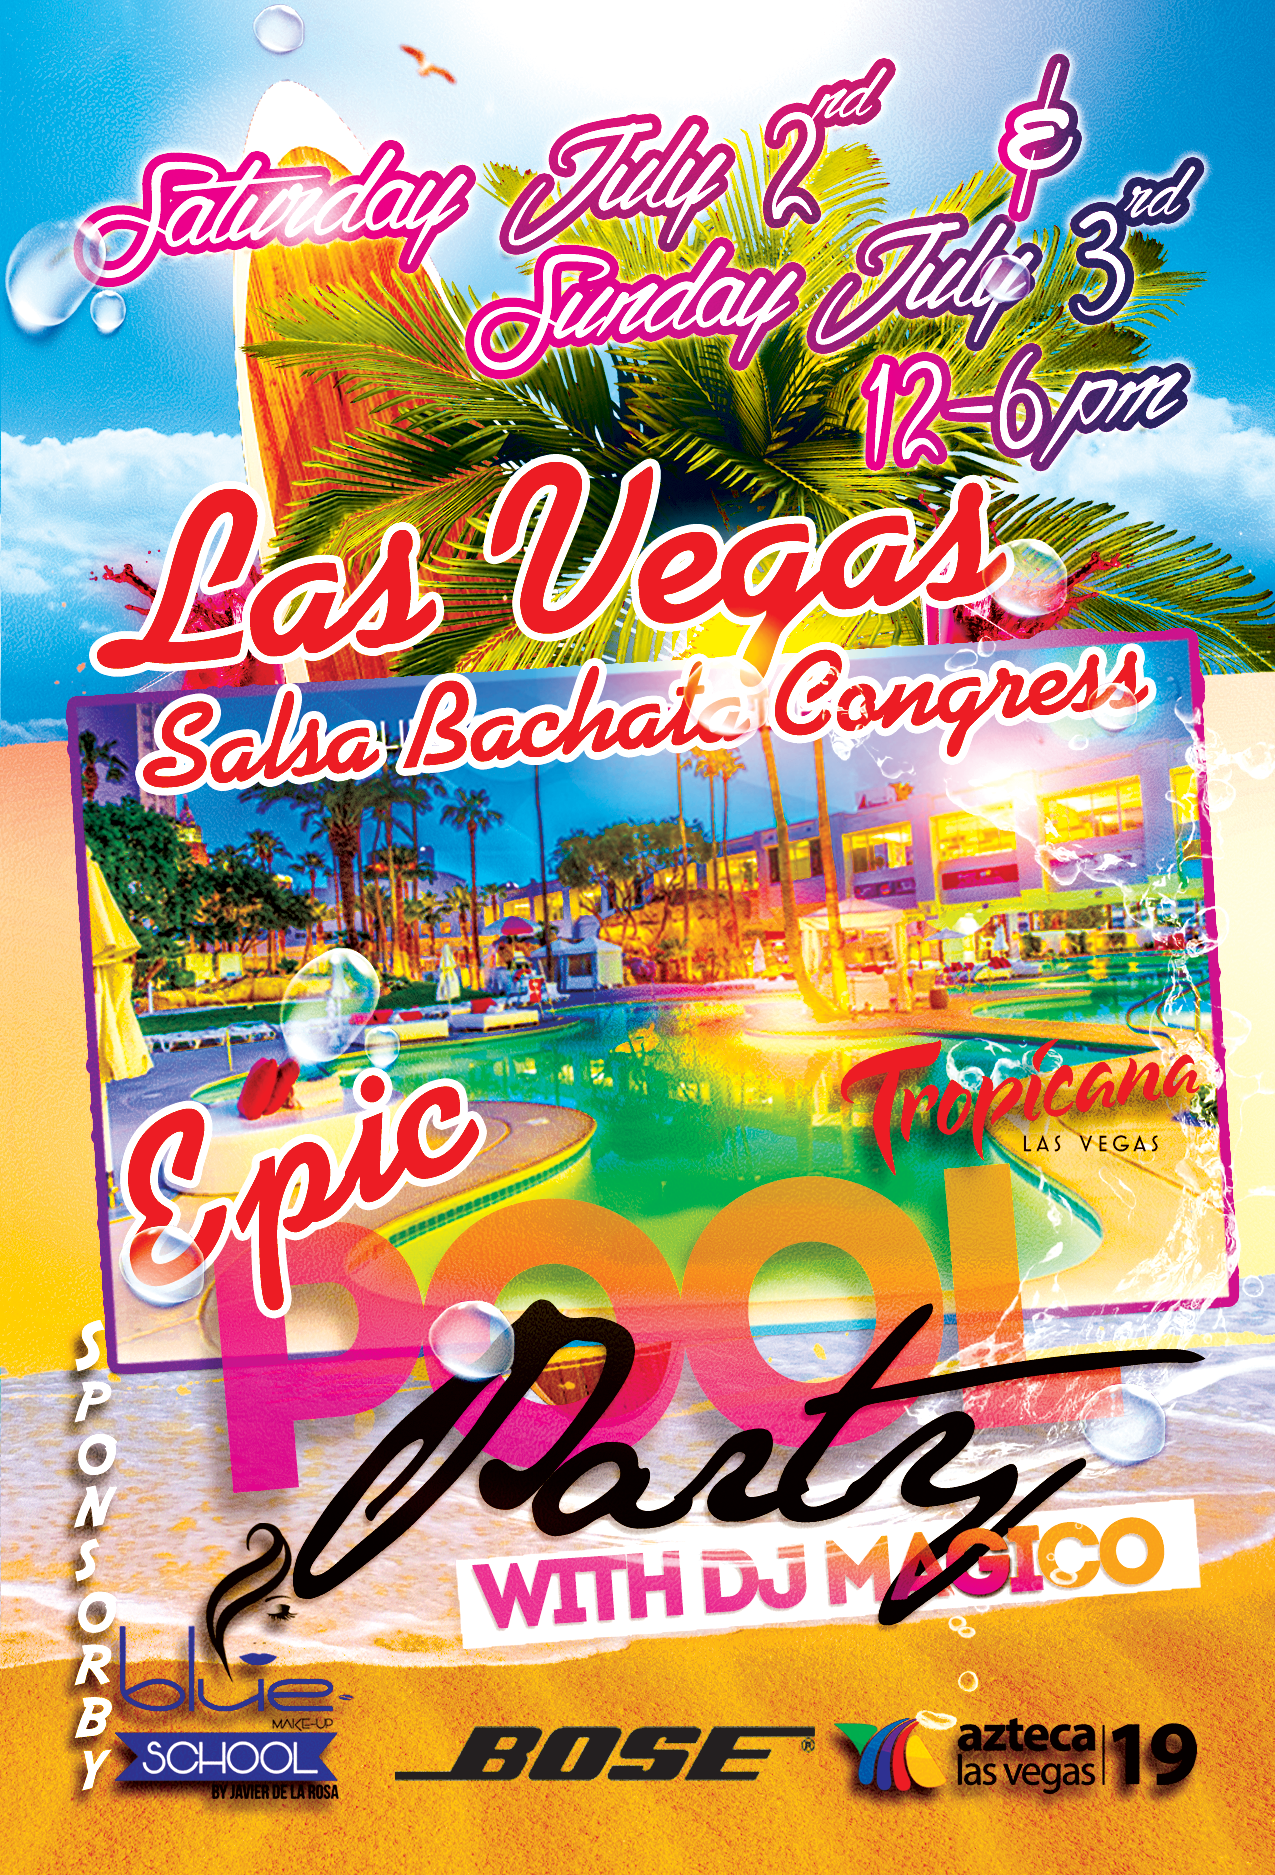 Search results for pool party vegas schedule calendar 2015 for Pool show las vegas 2016